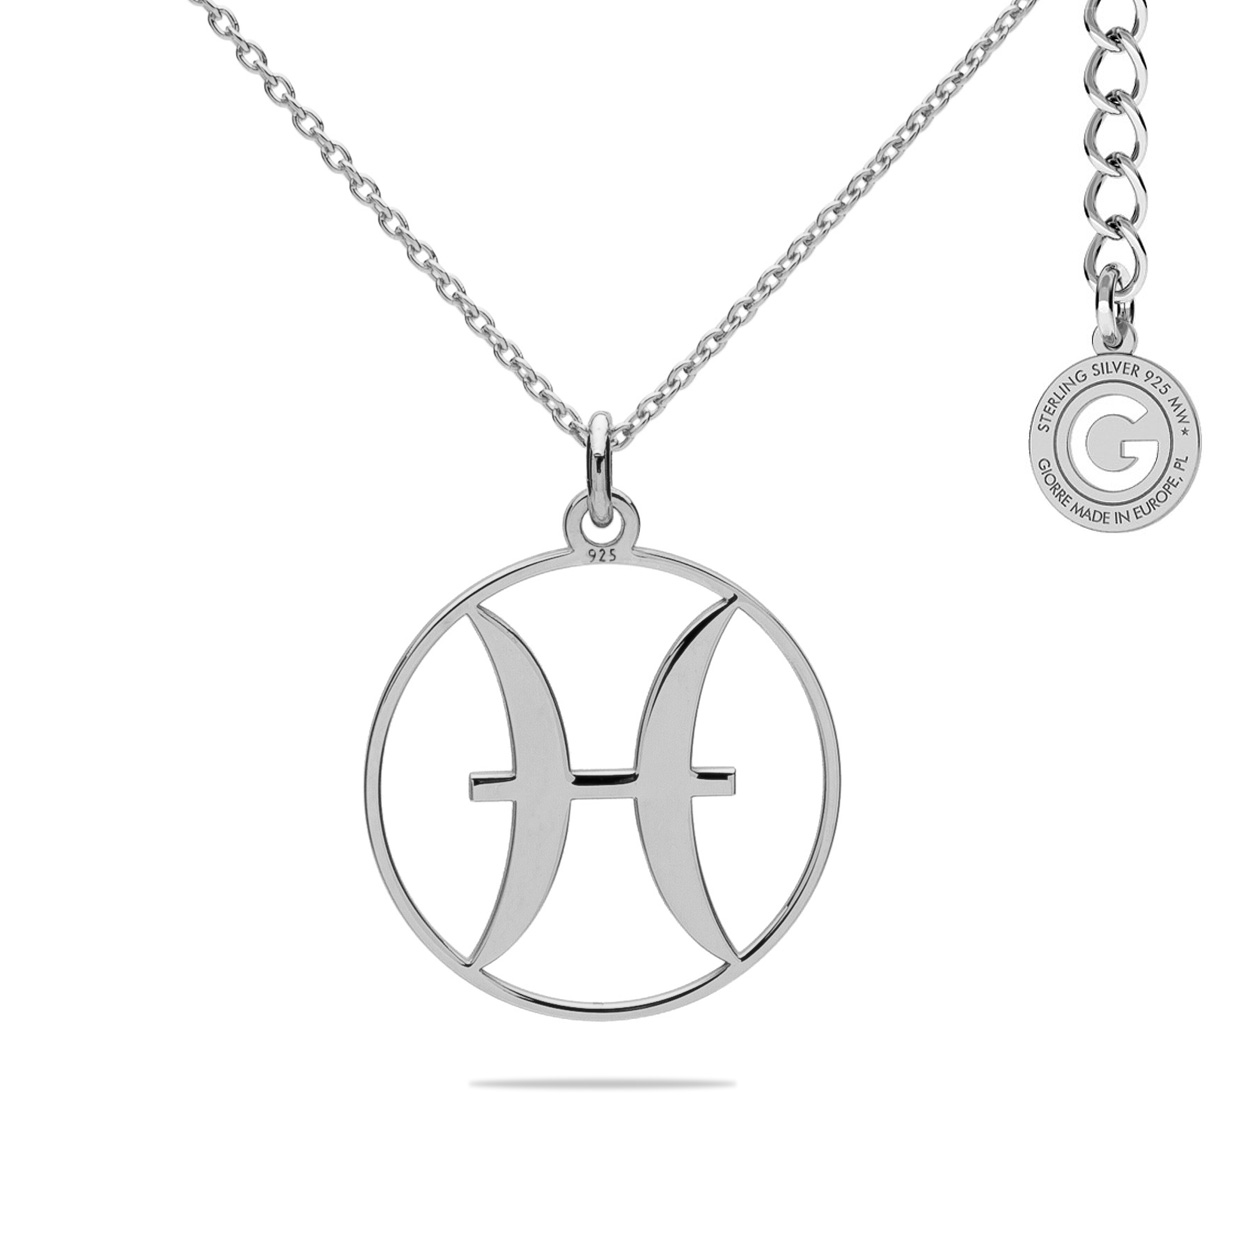 PISCES ZODIAC SIGN NECKLACE SILVER 925